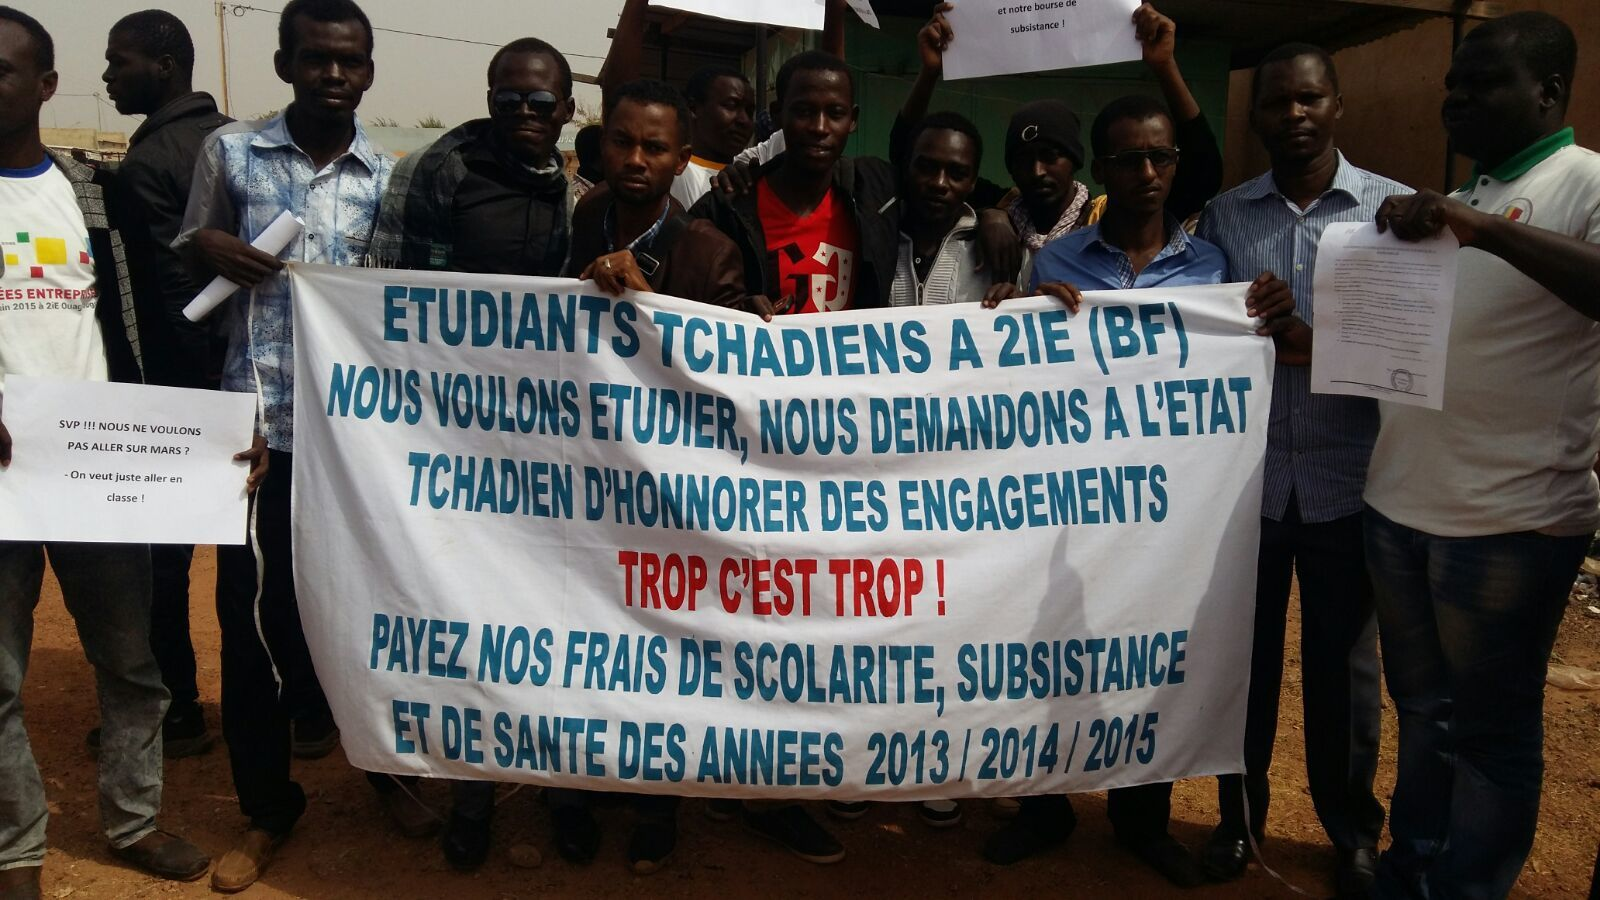 Doléance des étudiants Tchadiens de la Fondation 2iE (Burkina Faso)